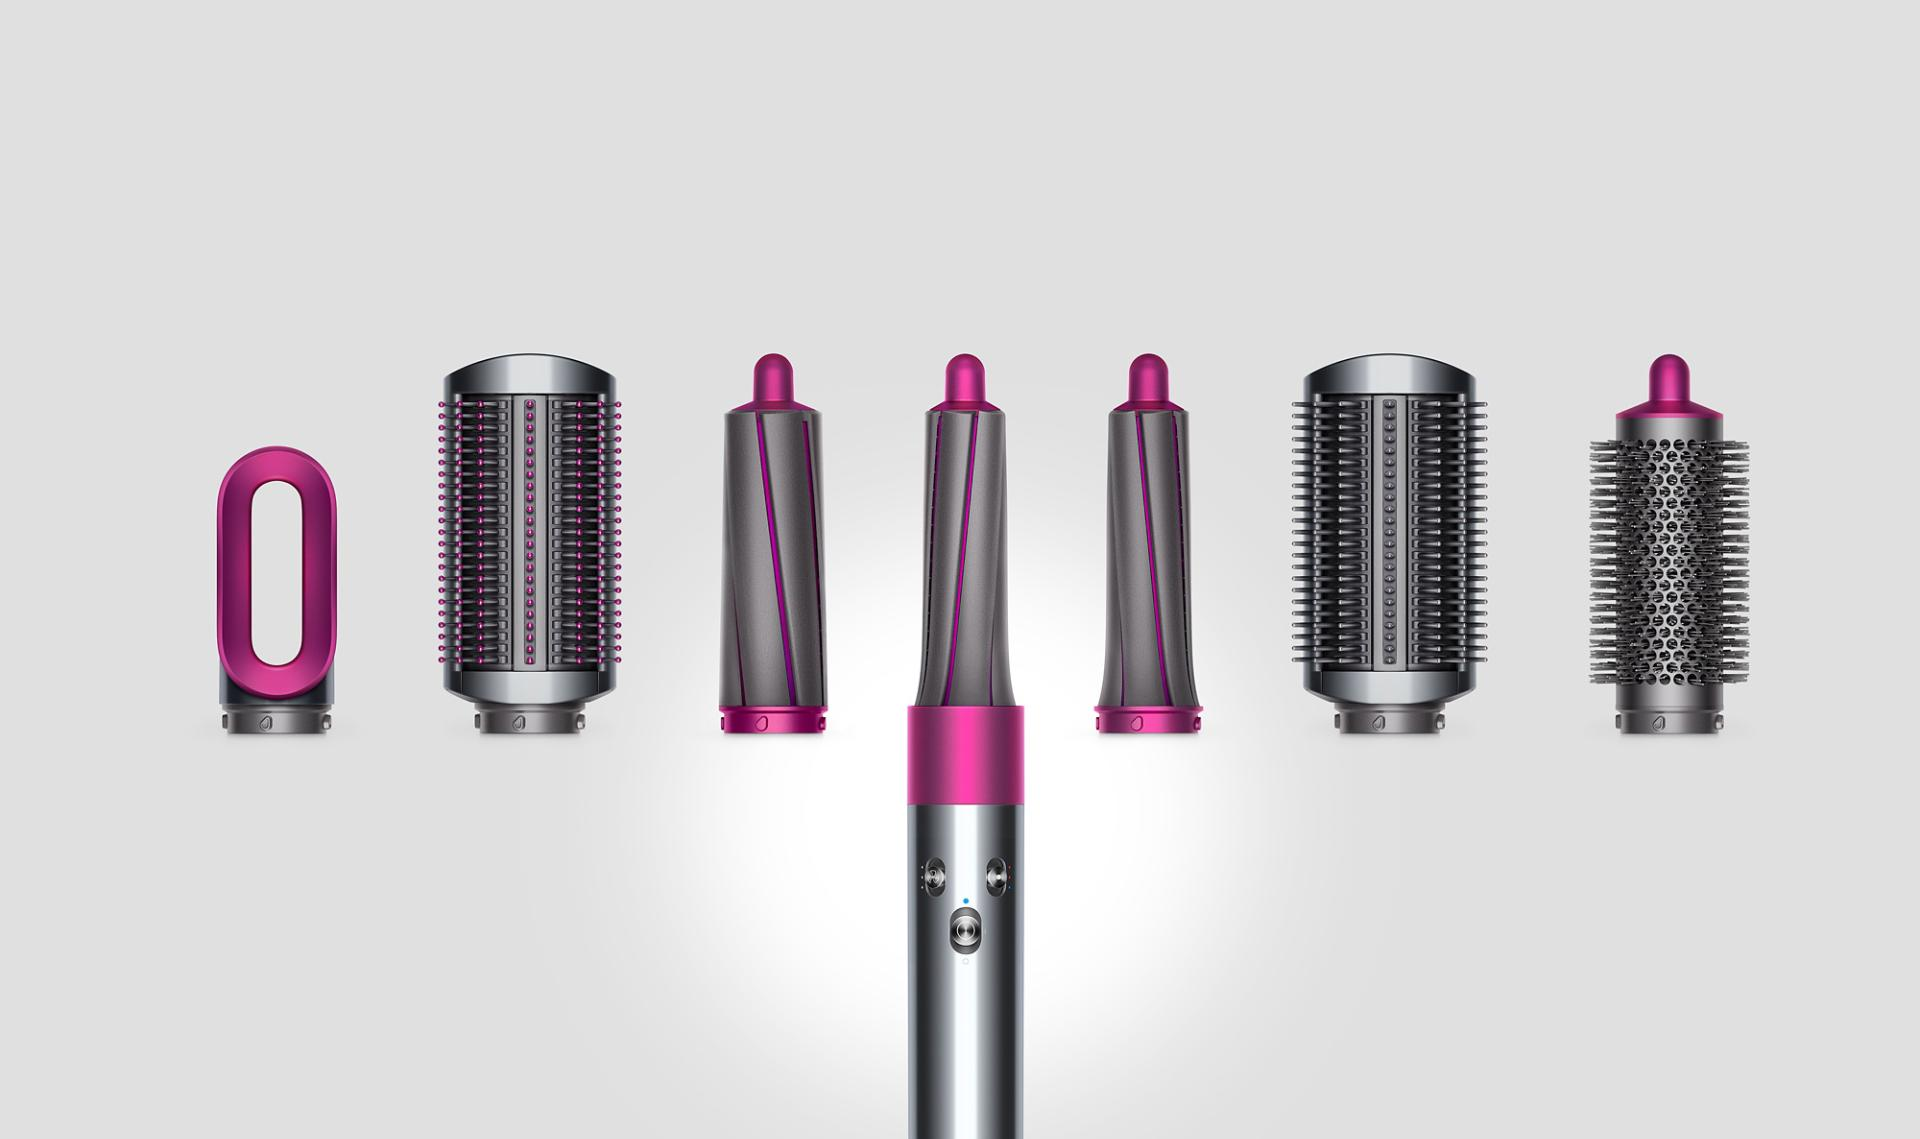 Dyson airwrap styler attachments being displayed in a line